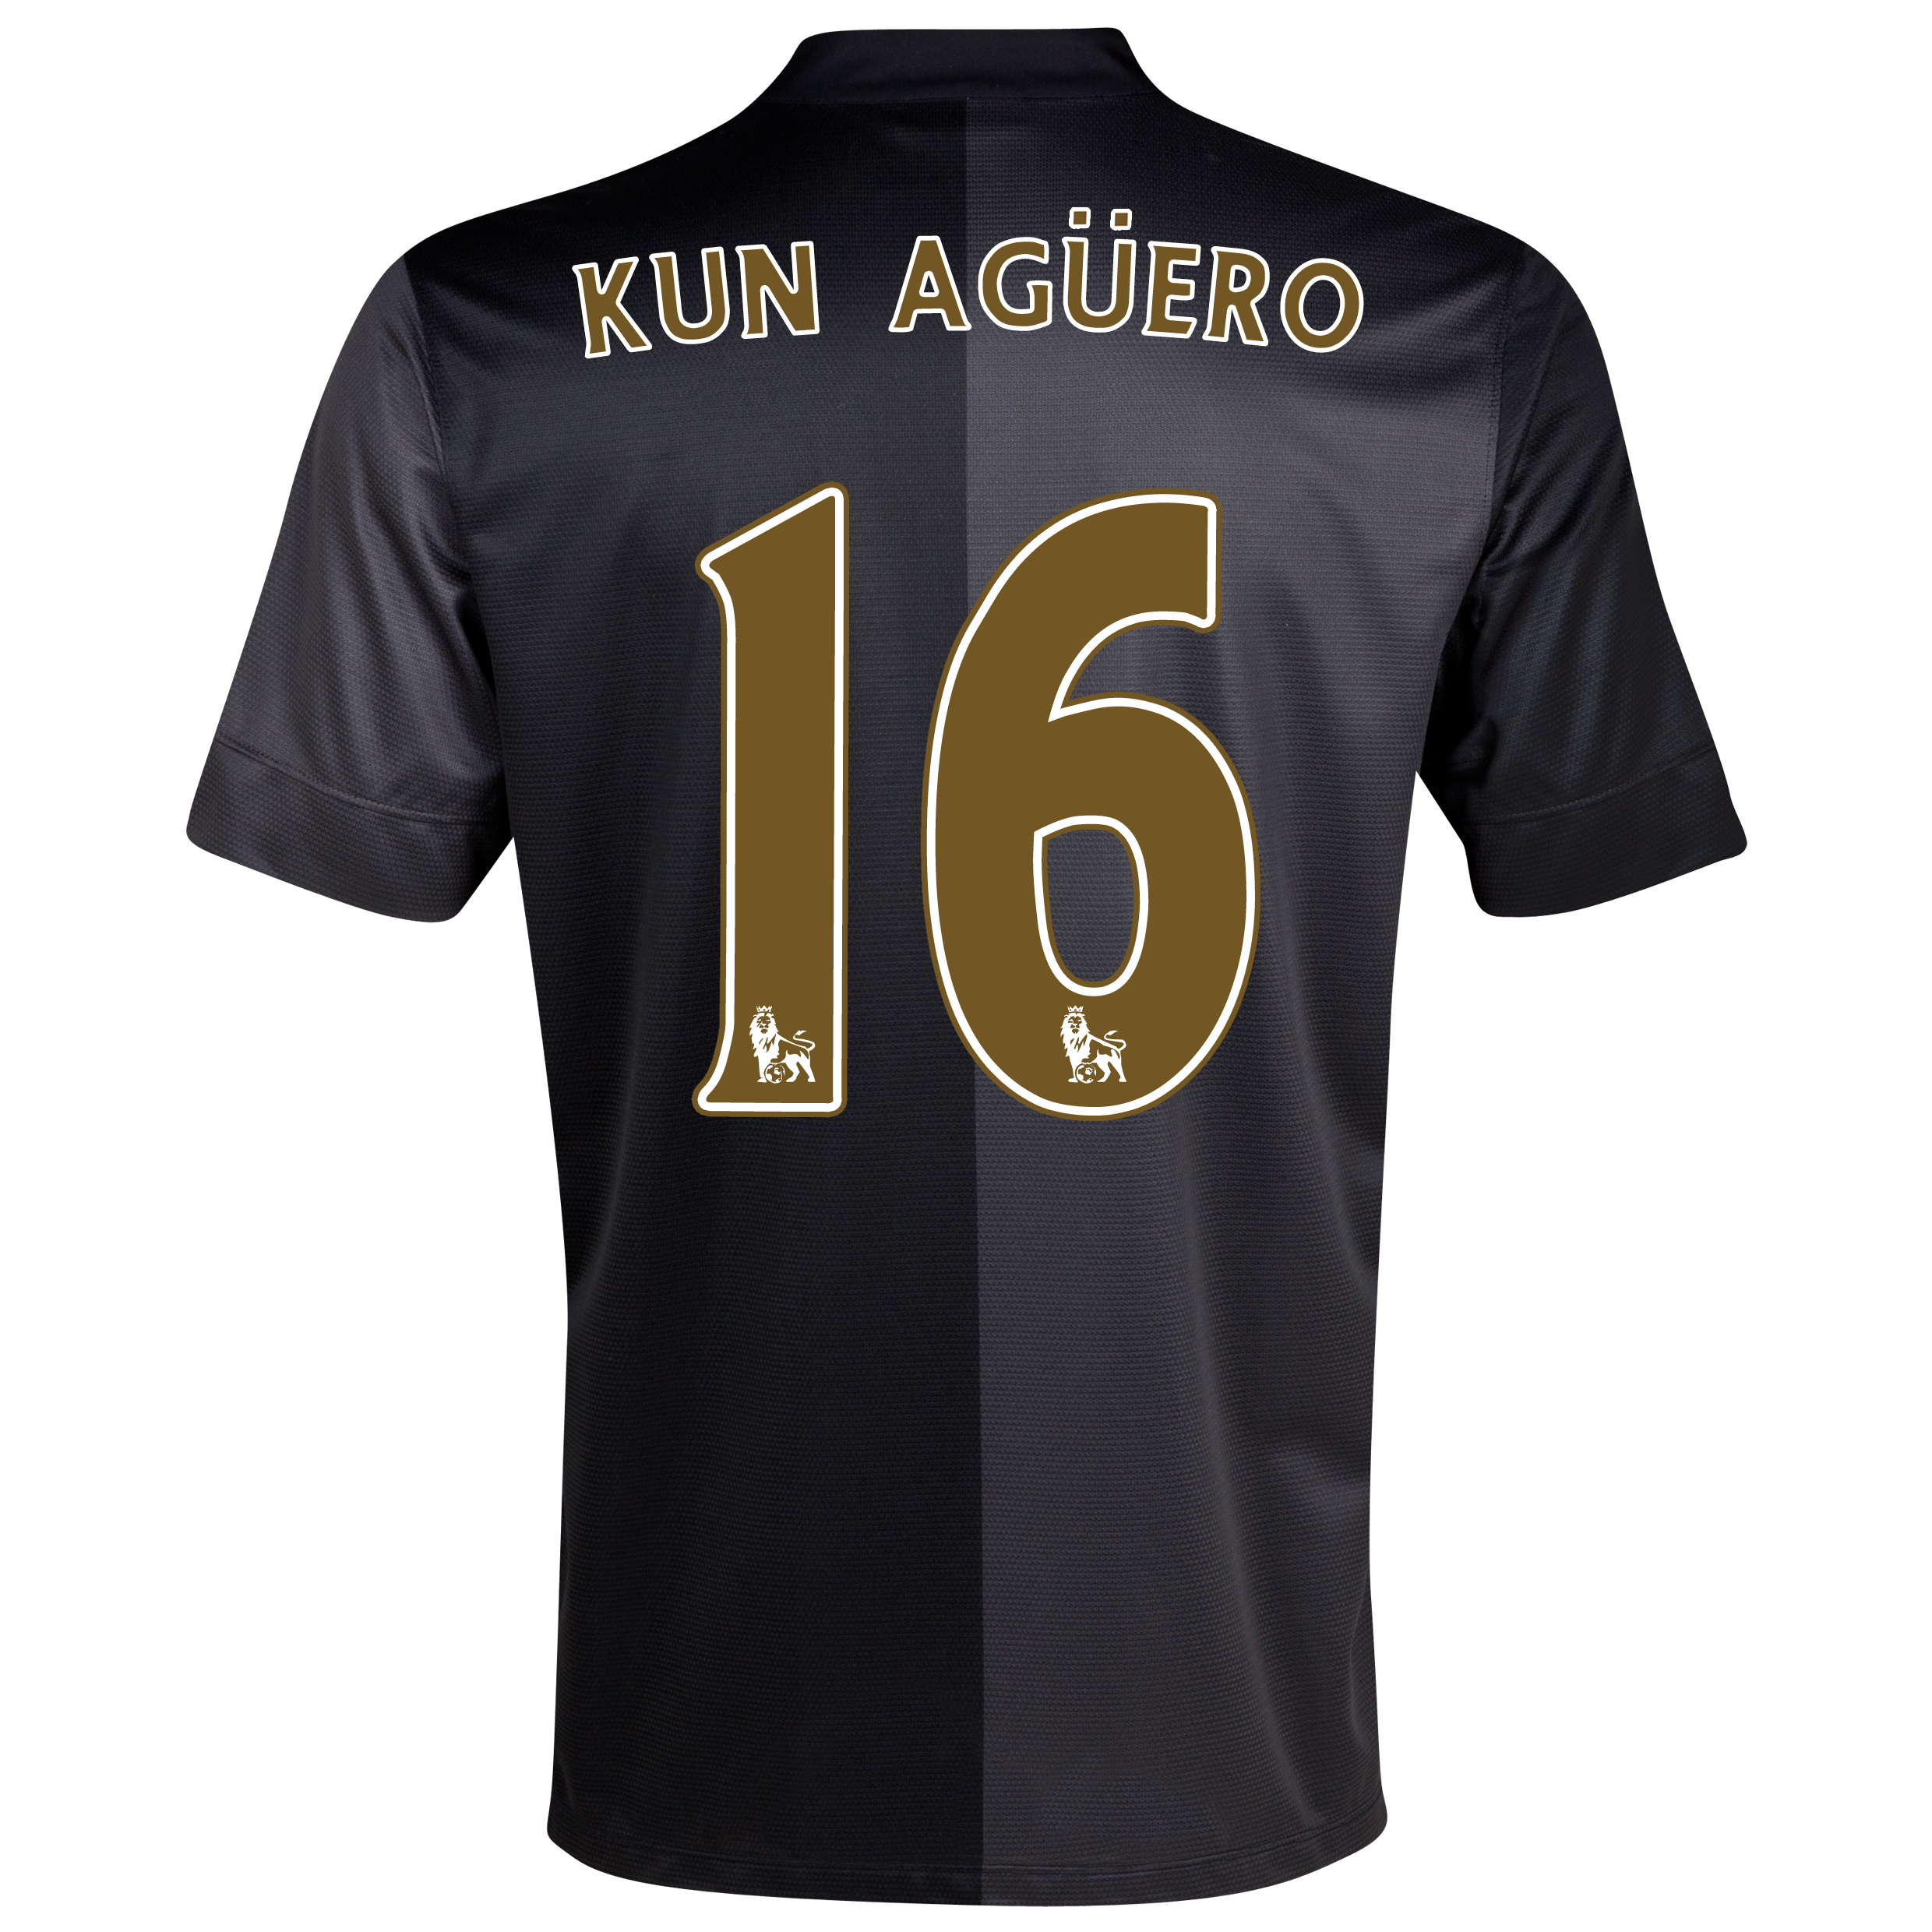 Manchester City Away Shirt 2013/14 with Kun Agüero  16 printing